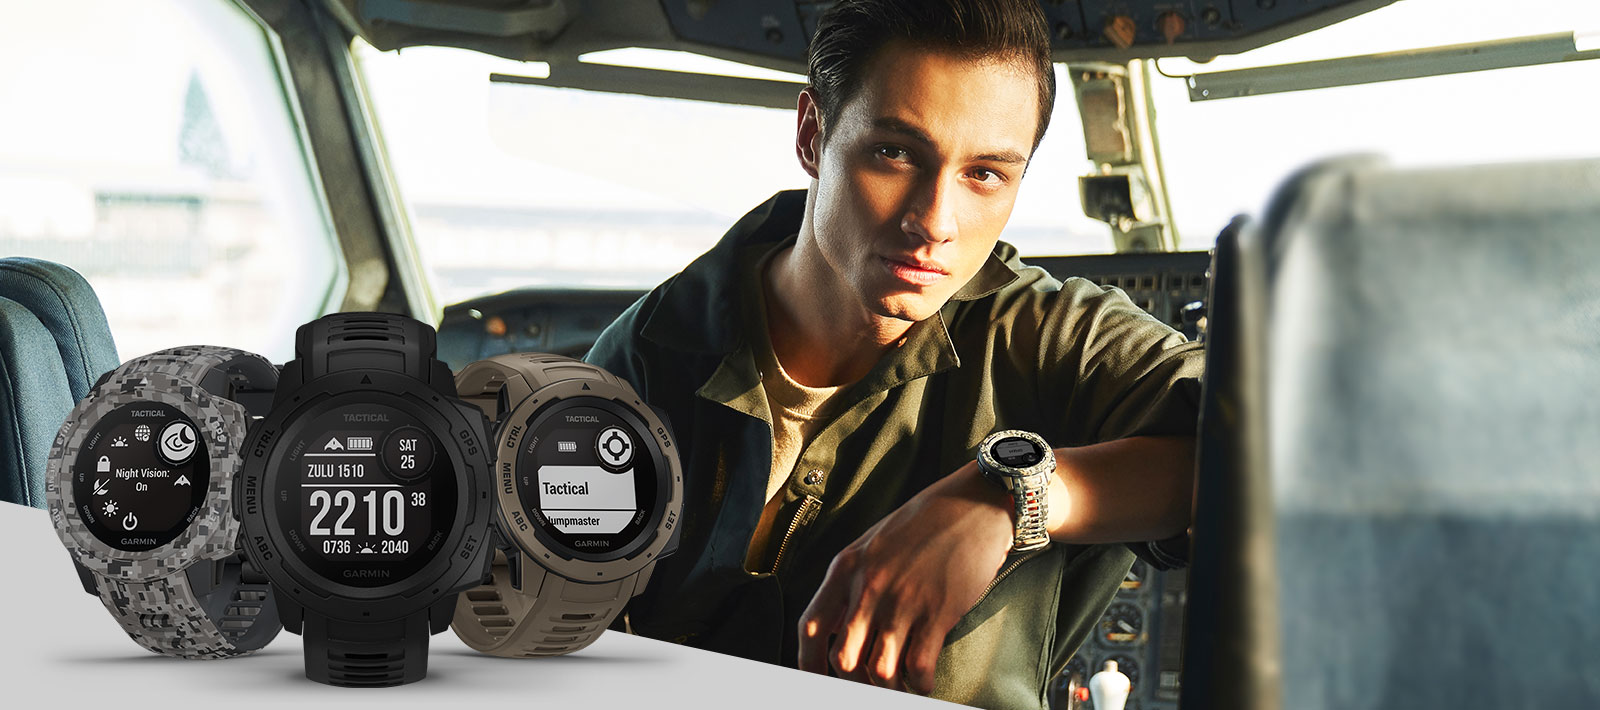 Instinct Series - Tactical edition , outdoor gps watch